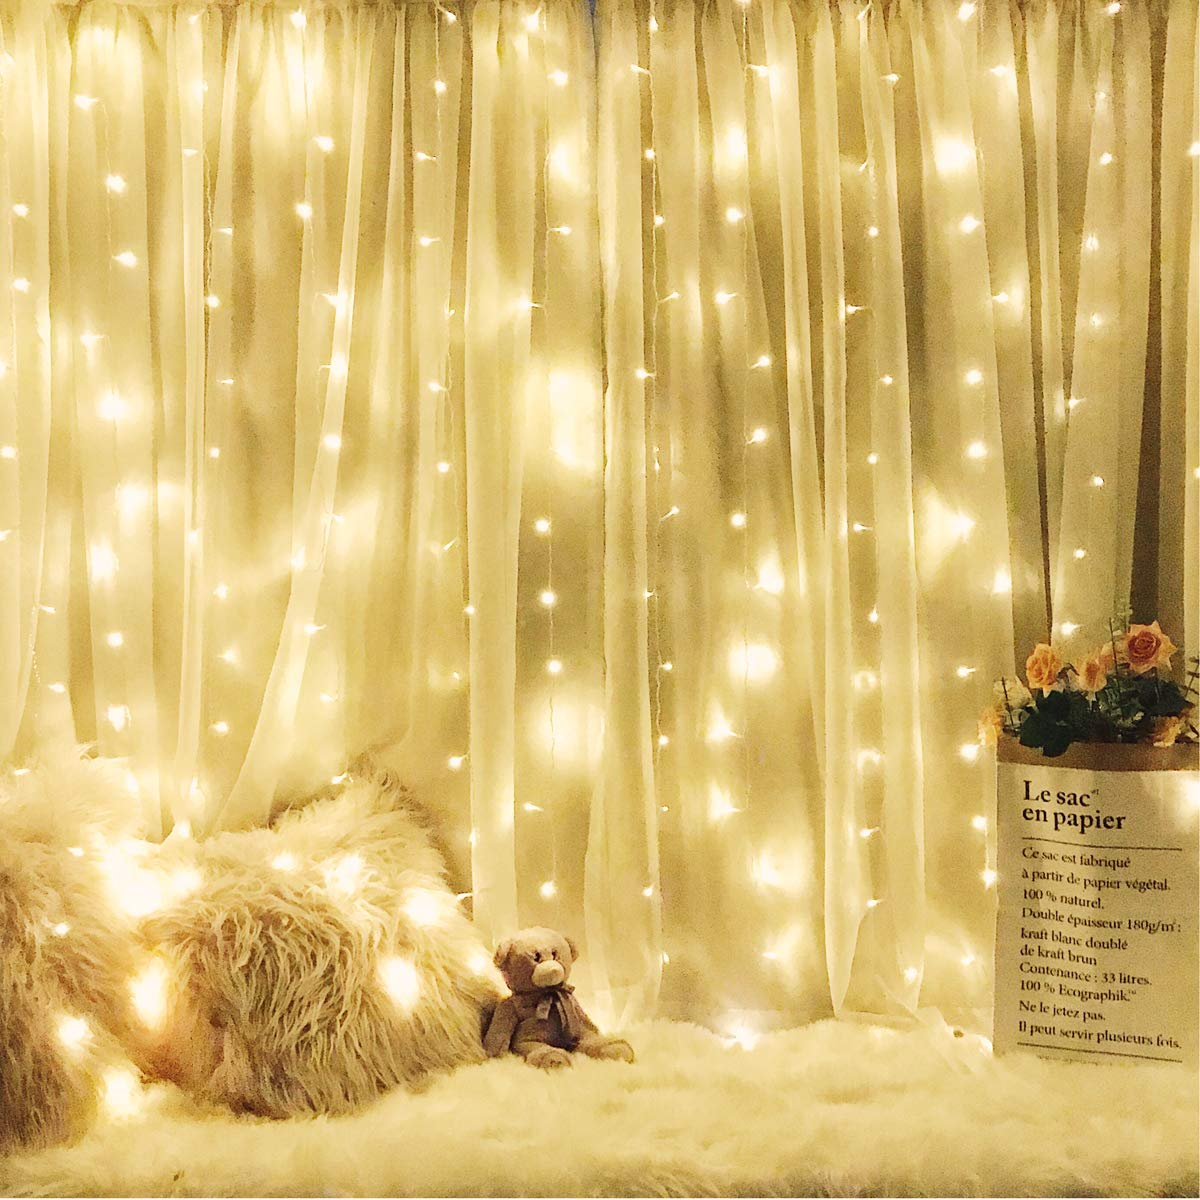 Aimork Window Curtain Lights 304 LED String Lights Extendable with 8 Modes Controller for Holiday, Party, Outdoor Wall, Wedding Decorations(9.8 x 9.8ft, Warm White)